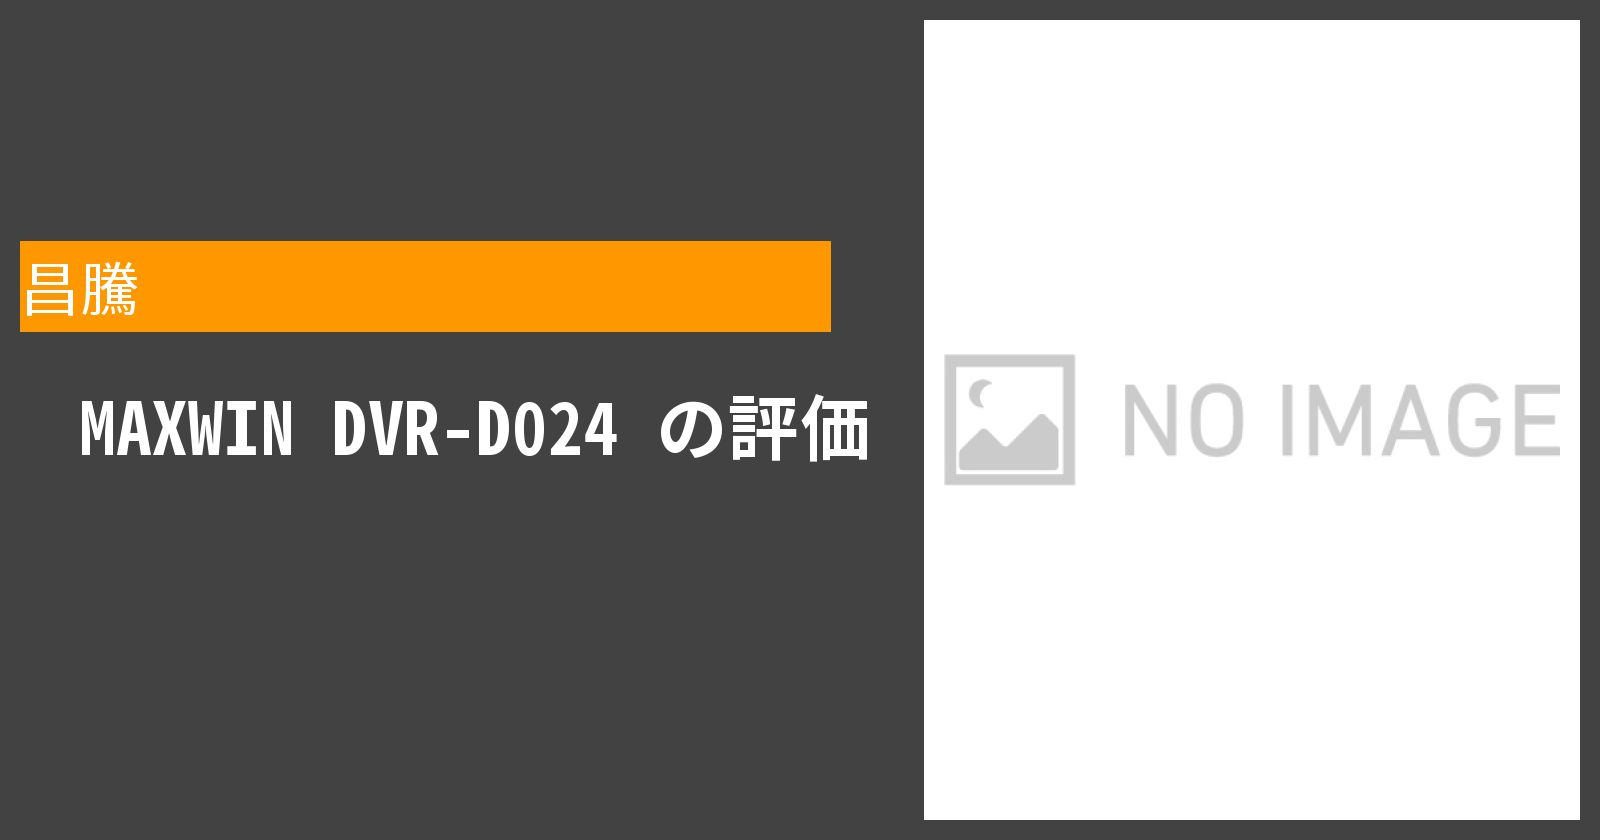 MAXWIN DVR-D024を徹底評価